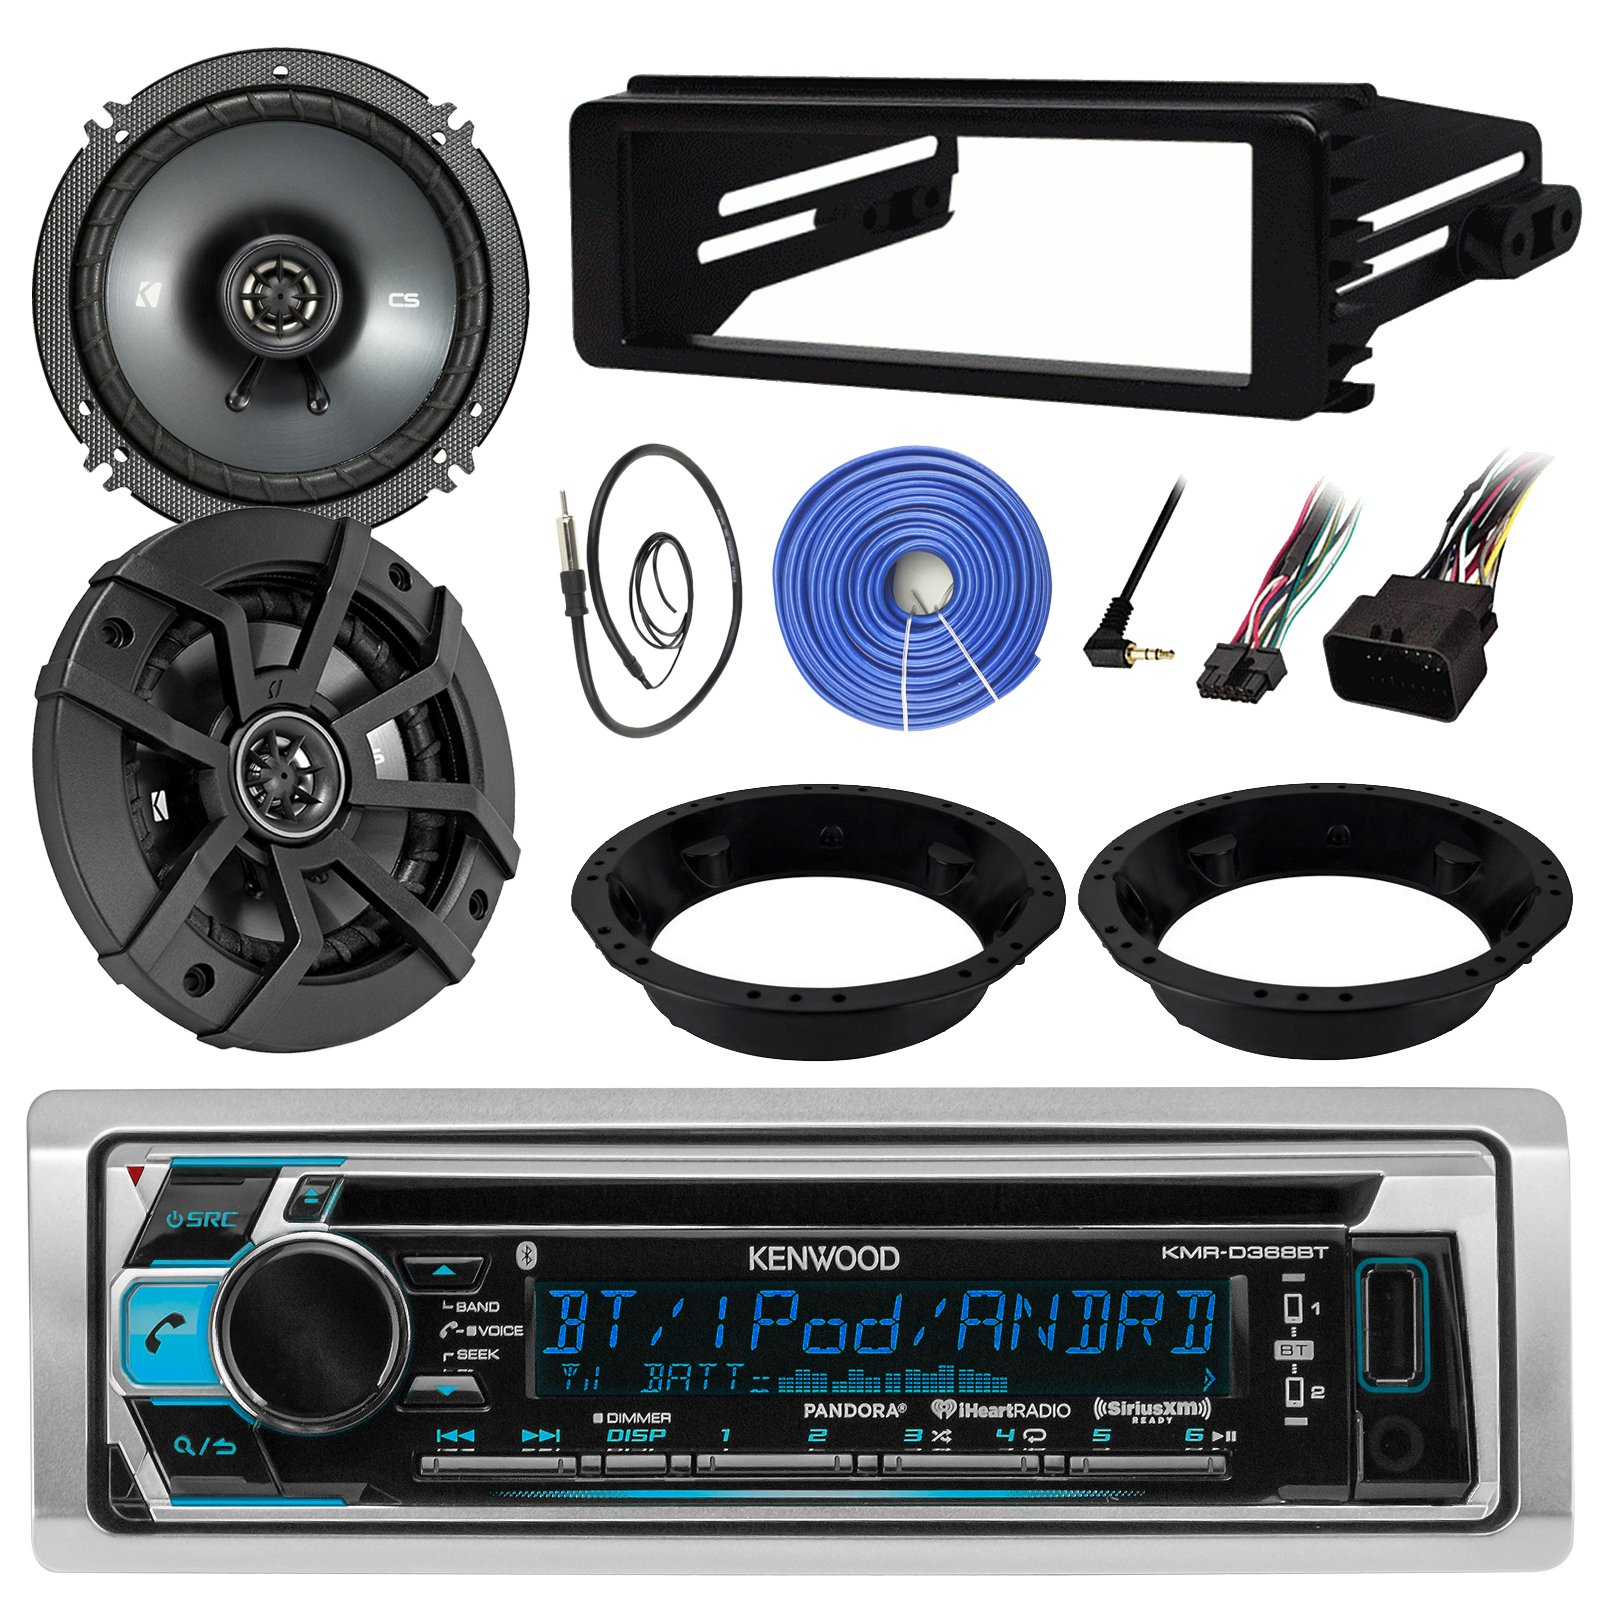 Kenwood KMR-D368BT Stereo CD Receiver Bundle Combo With 2x Kicker 6.5'' Speakers W/ Adapter Brackets, Dash Kit For 1998-2013 Harley Motorcycles + Enrock 22'' Radio Antenna + 50Ft 14g Speaker Wire